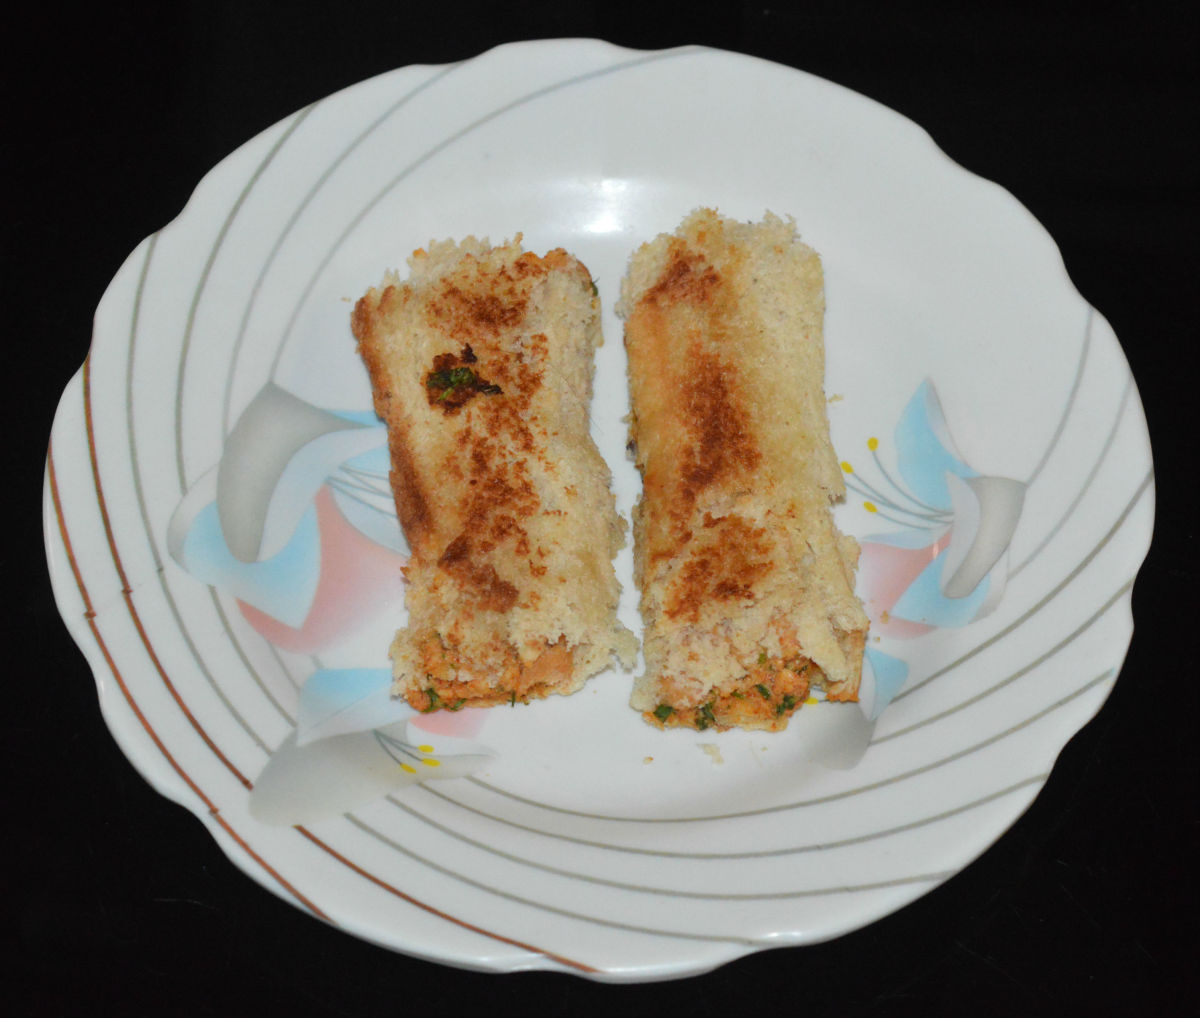 Kids' Snacks: How to Make Paneer Bread Rolls